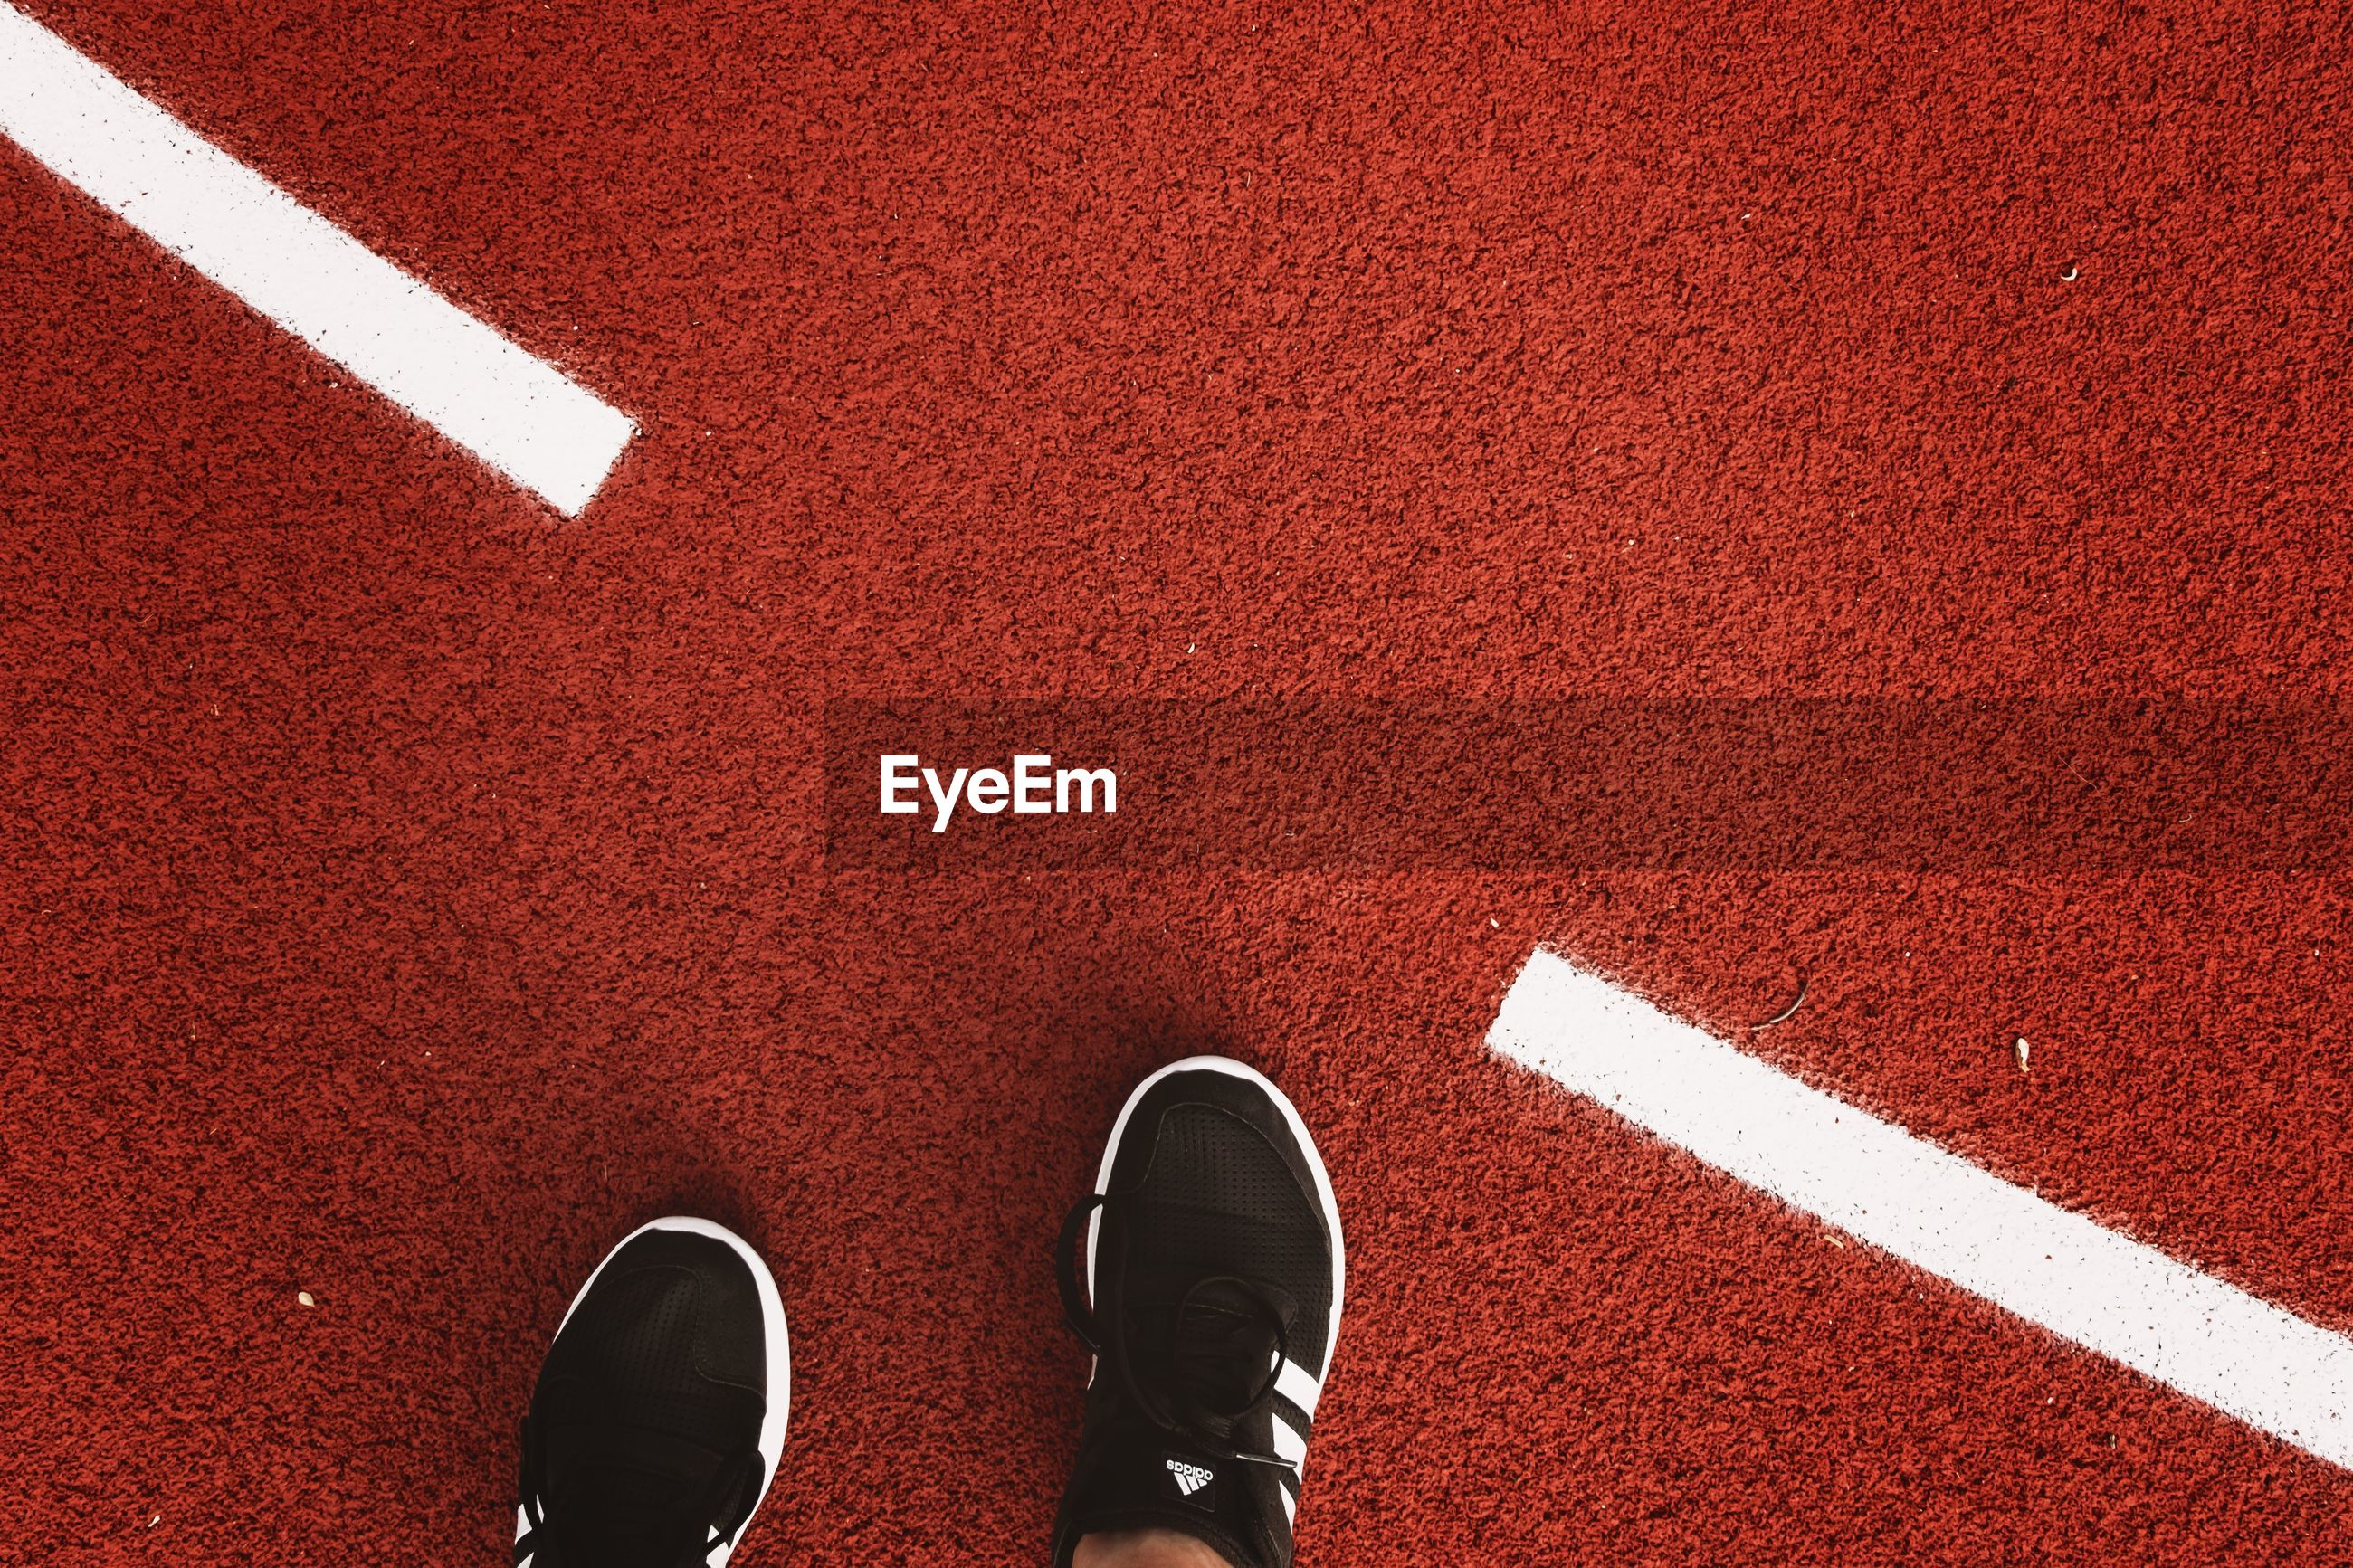 Low section of person wearing sports shoes on running track